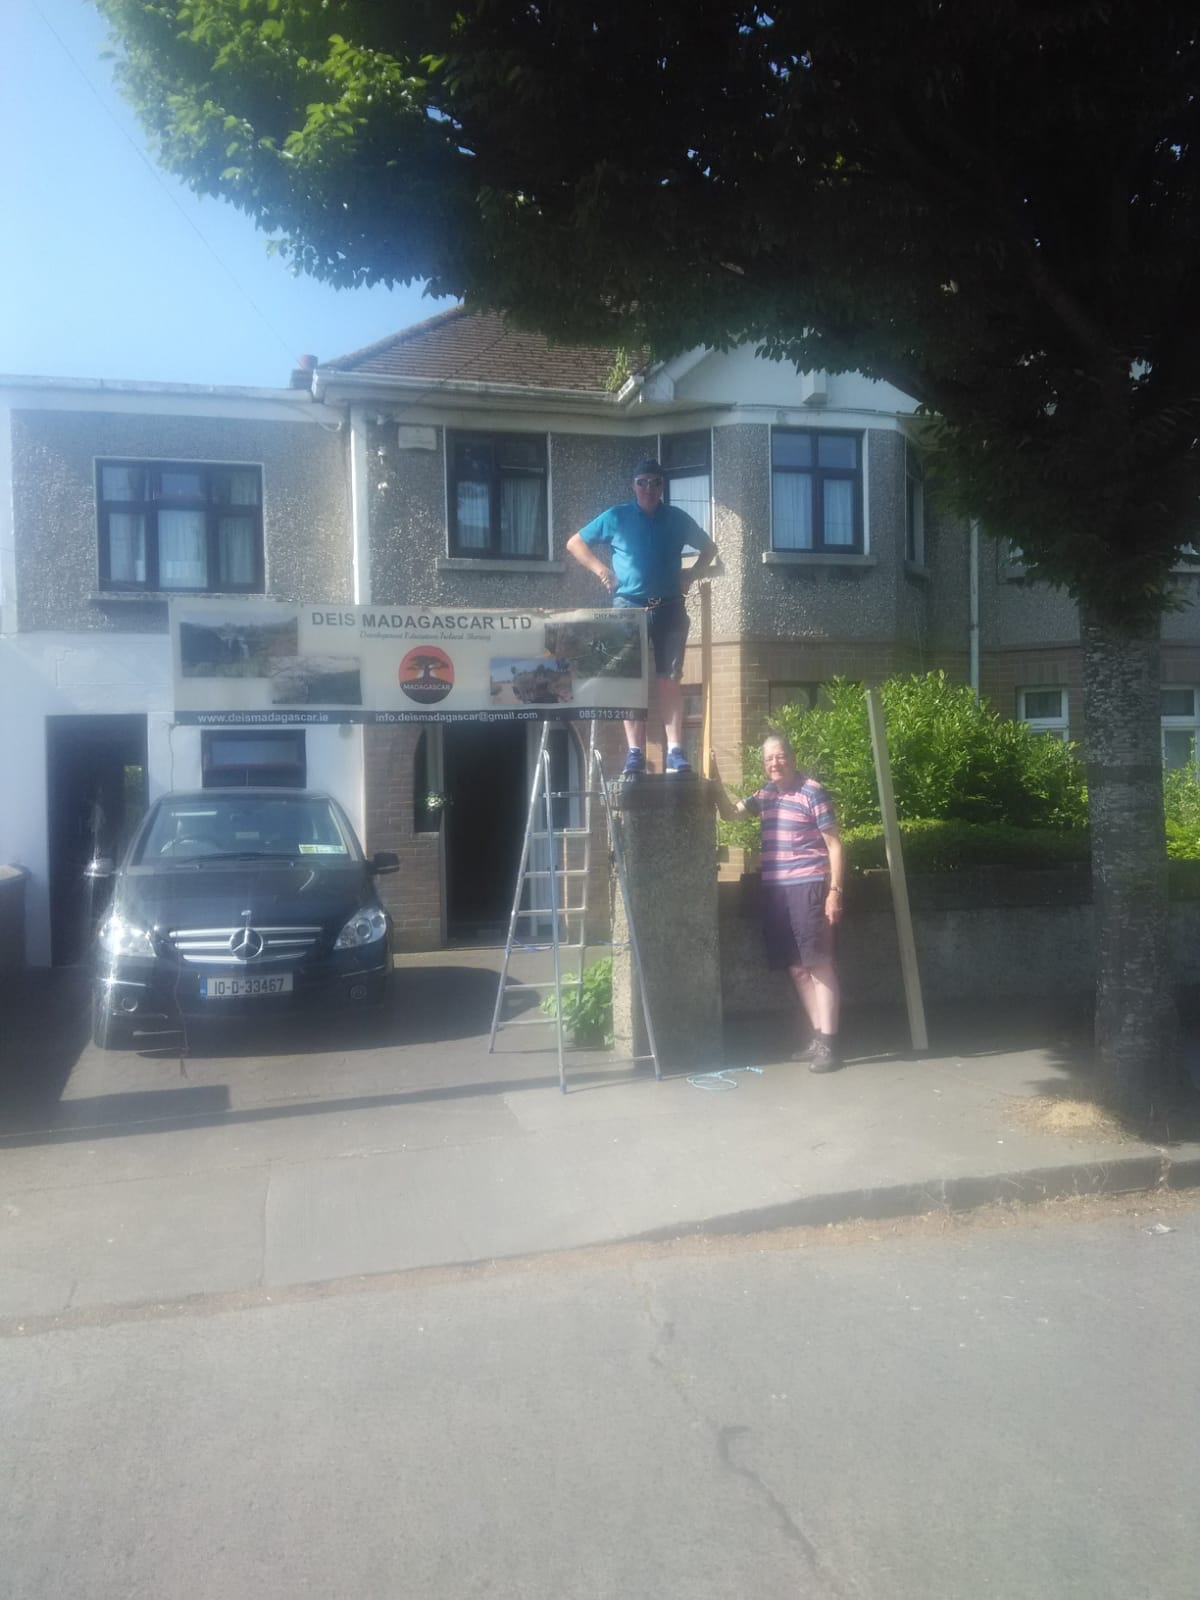 Noel Mooney and helper erecting the  DEIS MADAGASCAR  banner outside of Bernard and Marie's house on Saturday last  in preparation for coffee morning and cake sale.